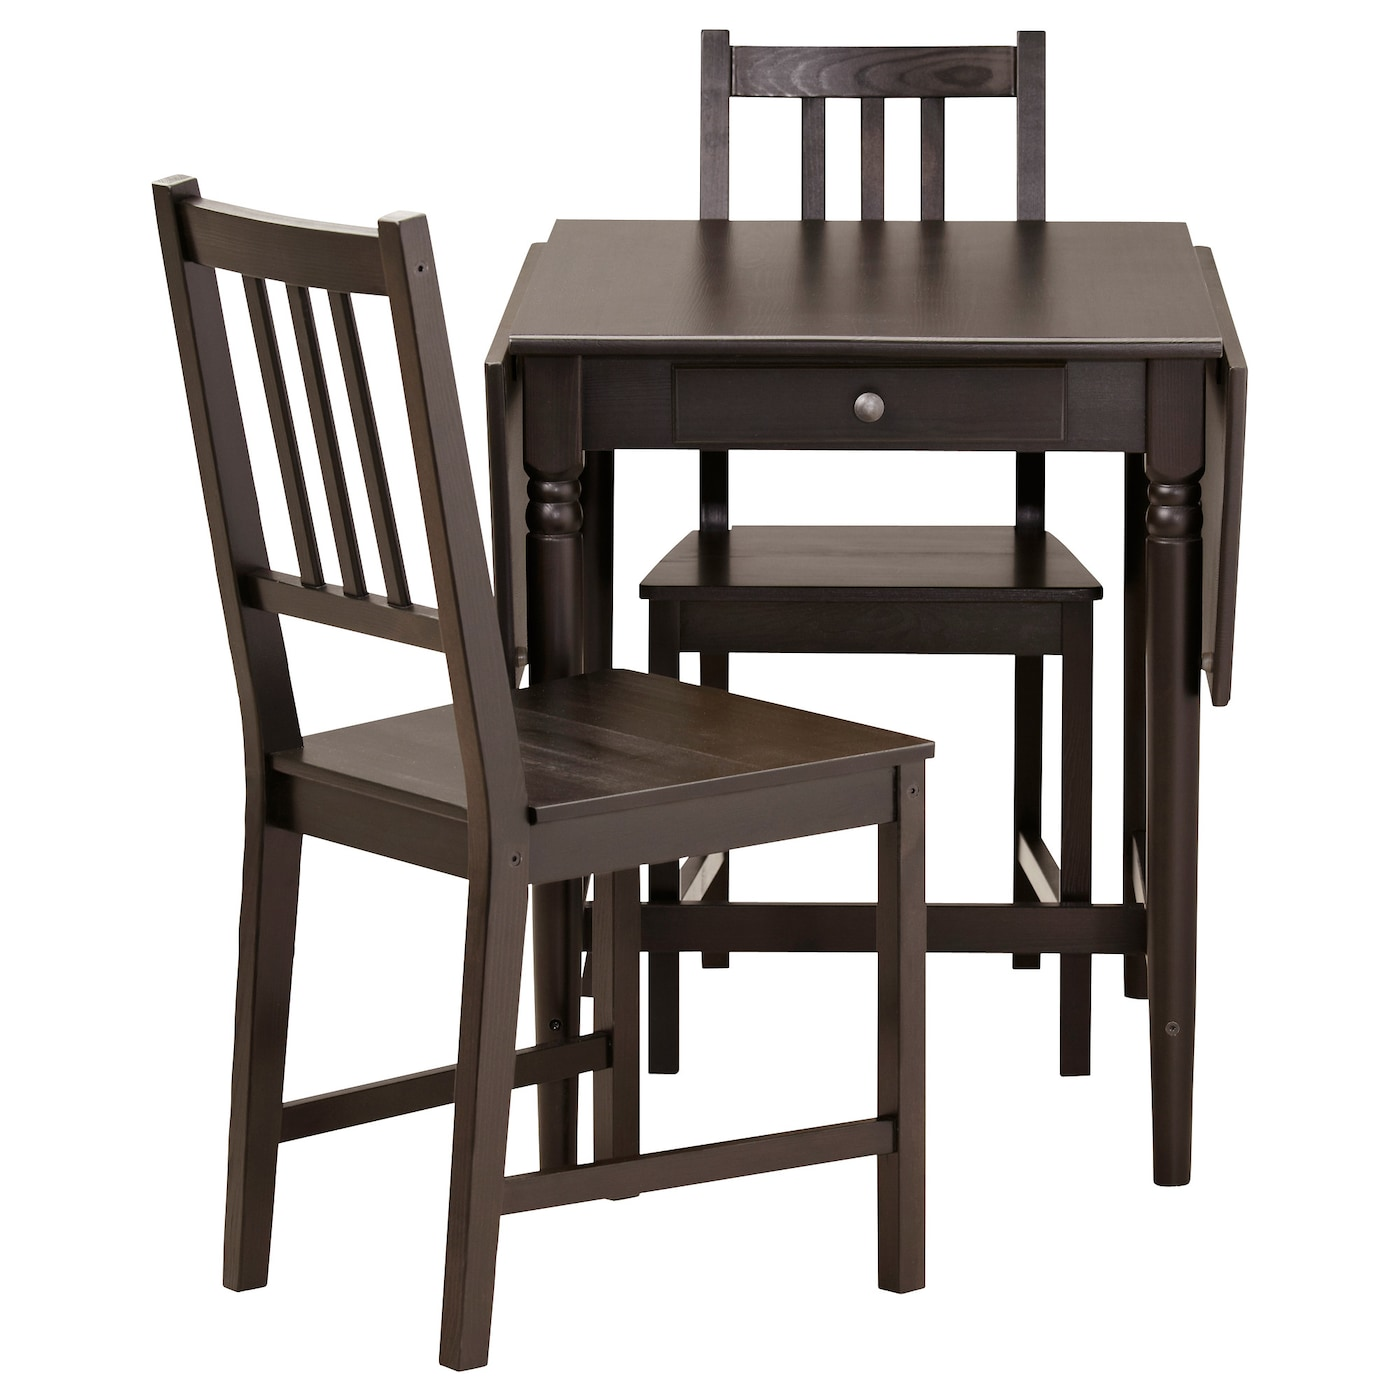 Ingatorp stefan table and 2 chairs black brown 59 cm ikea for Ikea dining table and chairs set